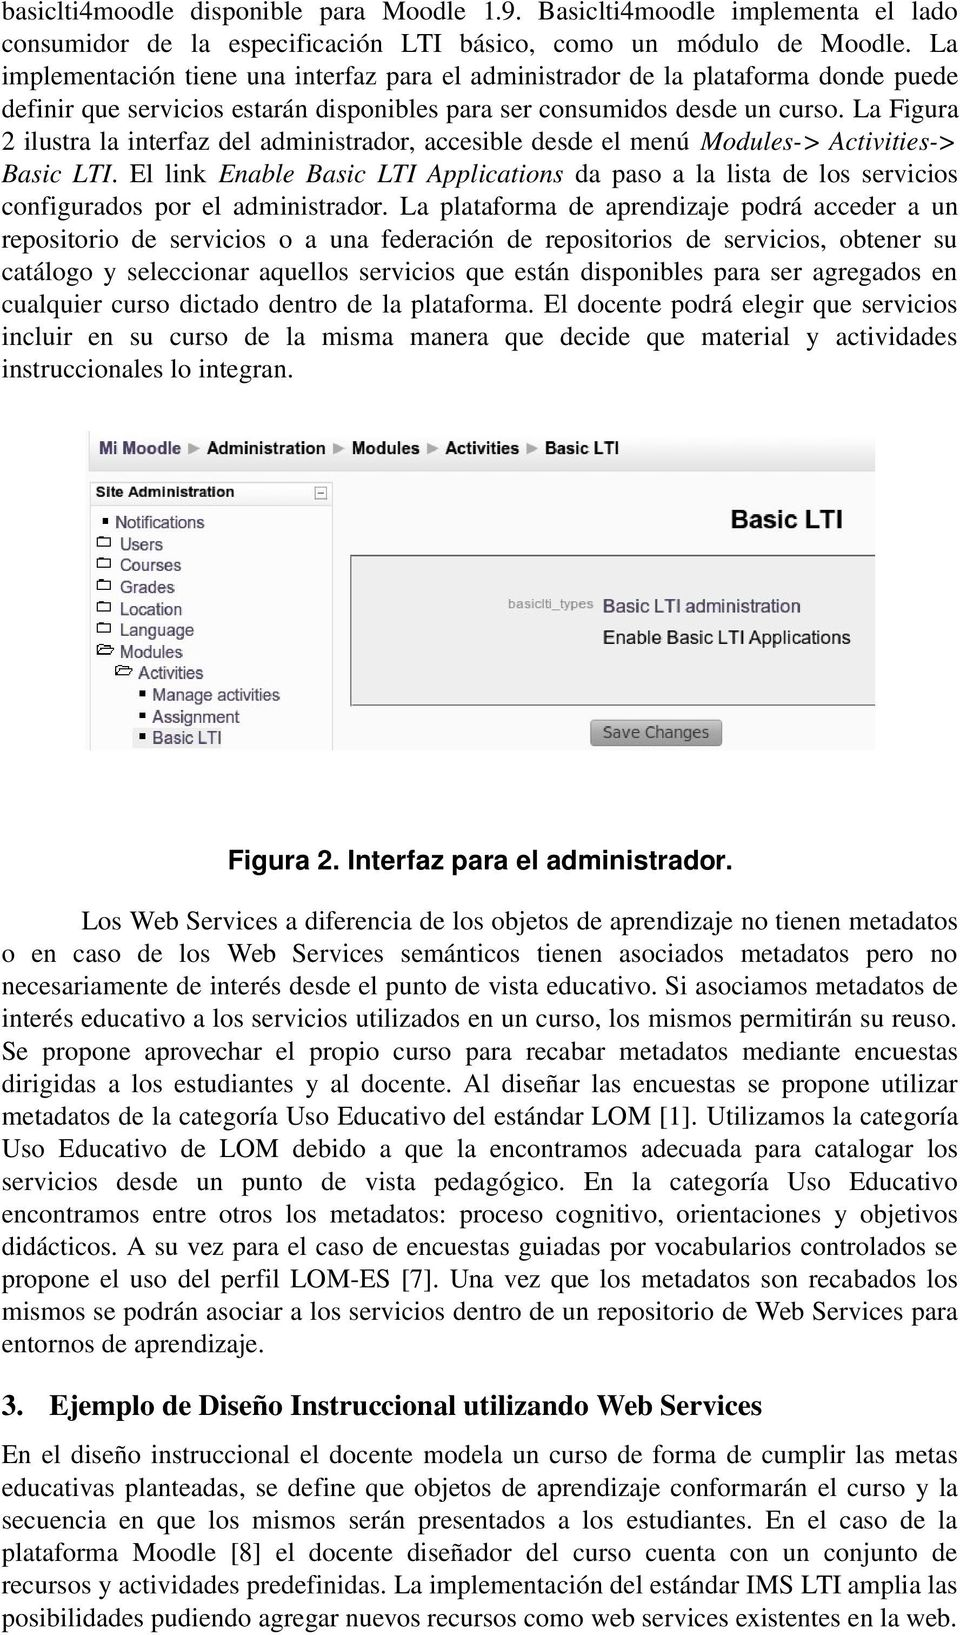 La Figura 2 ilustra la interfaz del administrador, accesible desde el menú Modules-> Activities-> Basic LTI.